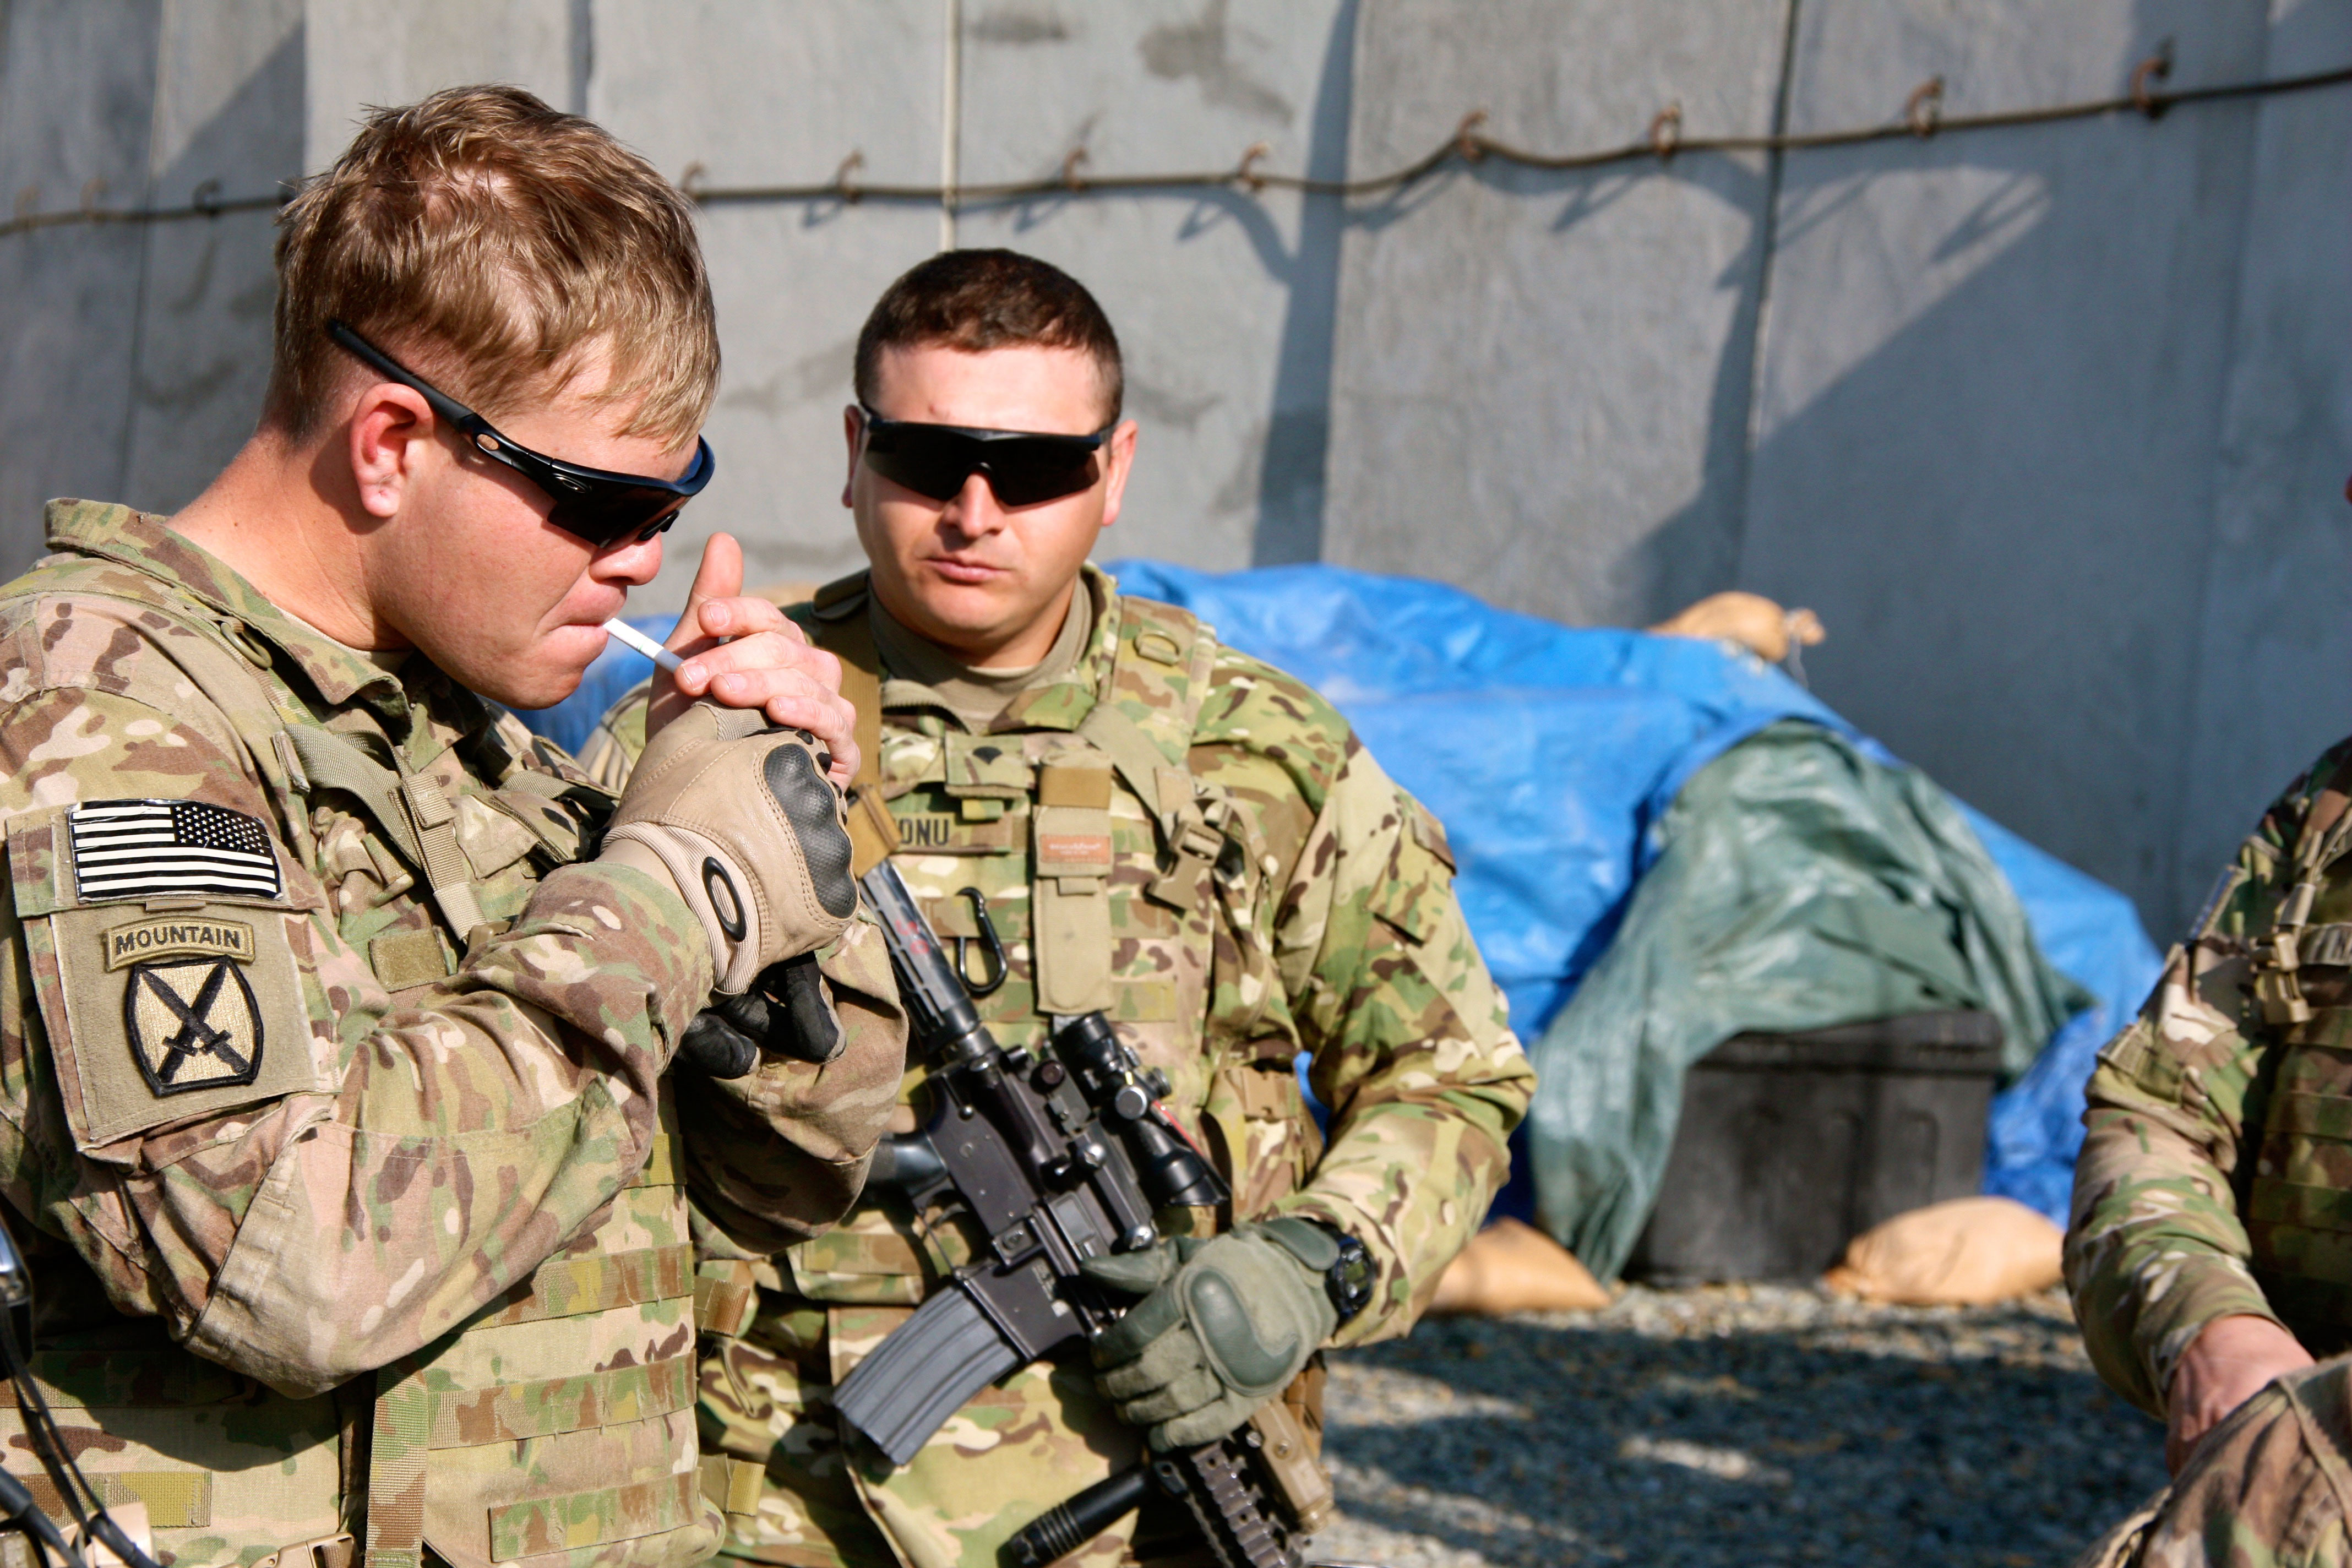 U.S. Army soldiers use a smaller, lighter variant of the M16, called the M4, in Afghanistan.